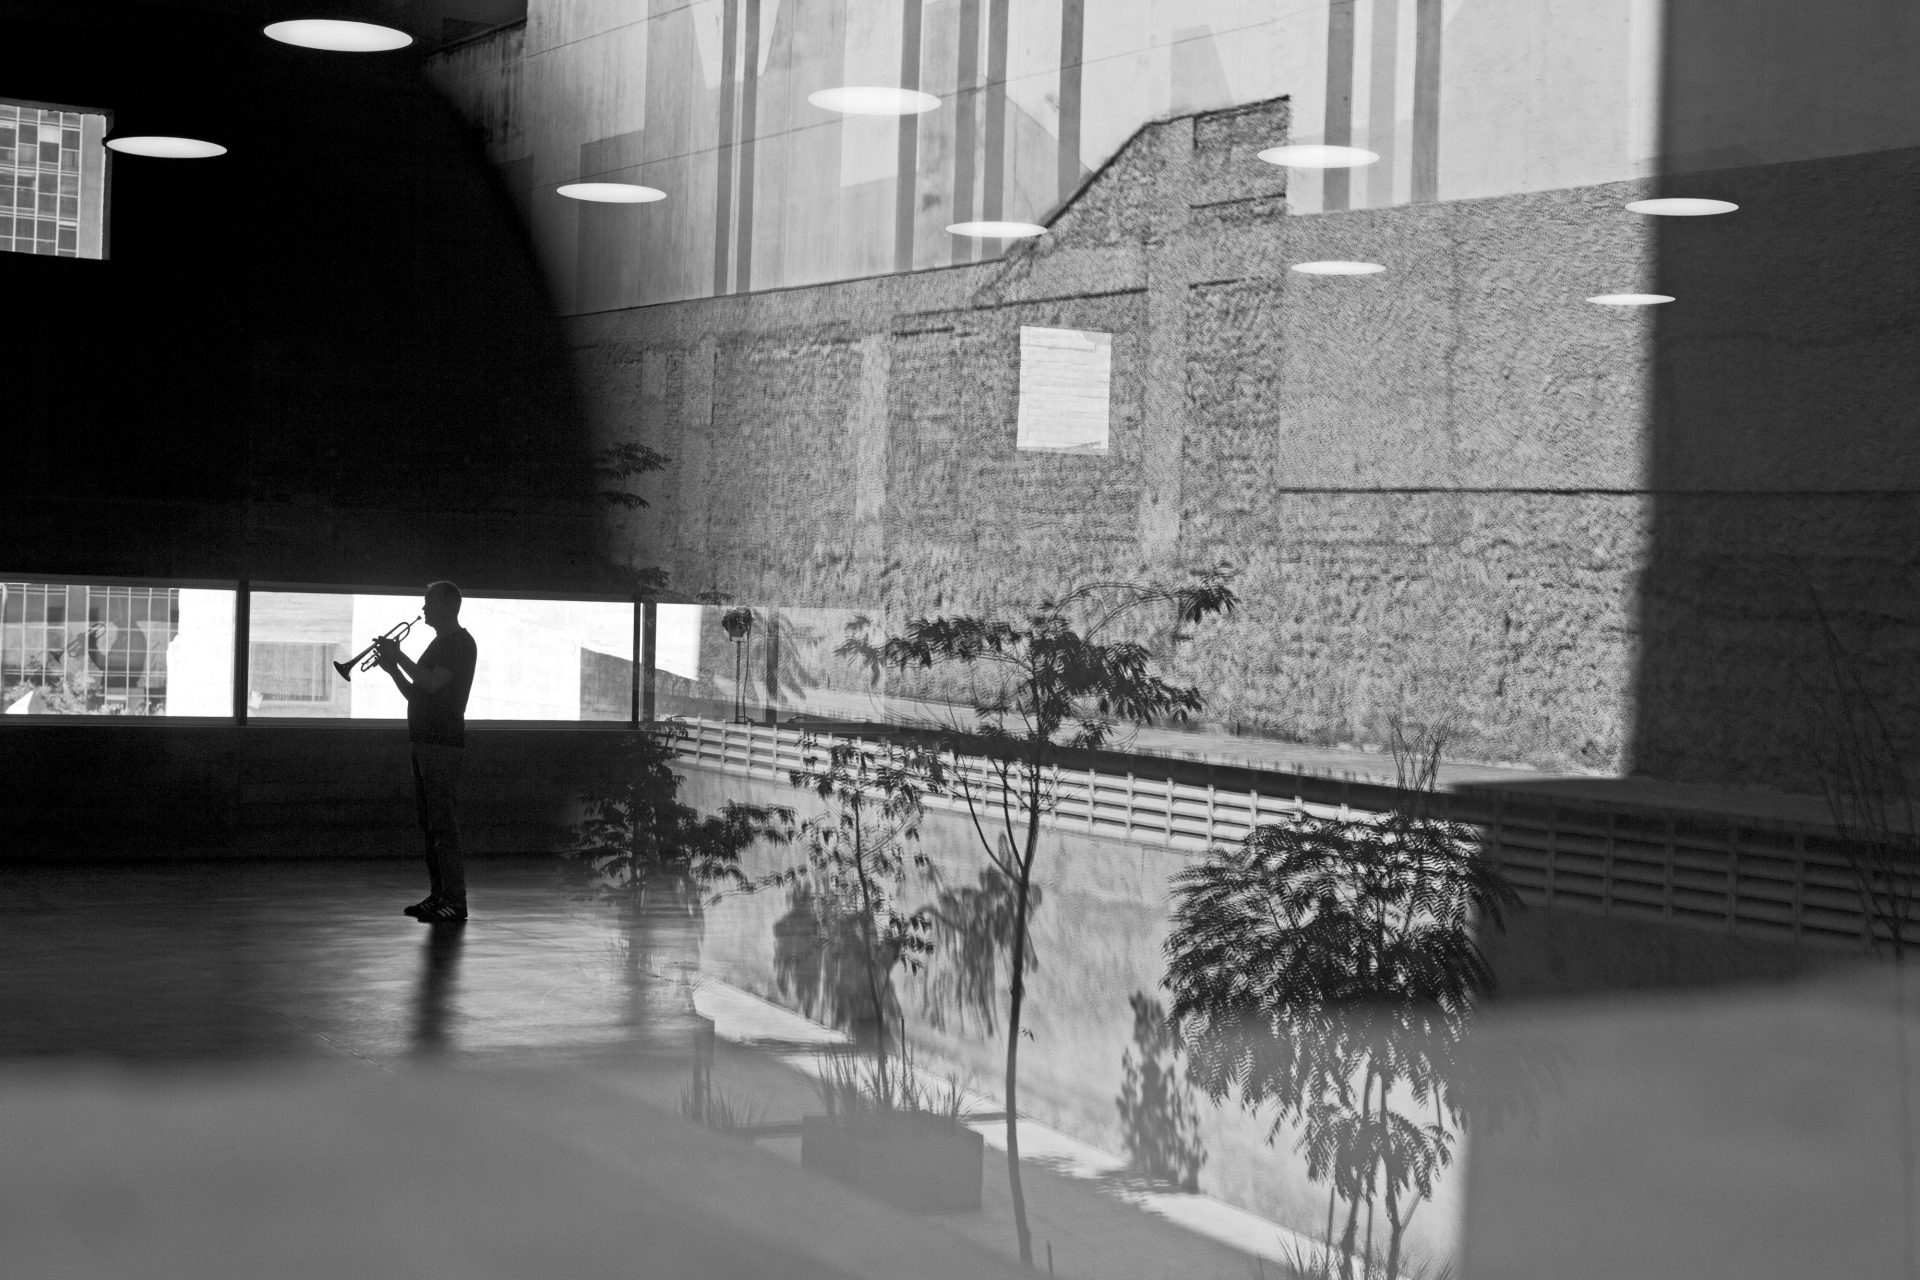 A trumpet player of The deutsche Kammerphilharmonie Bremen is doing his rehearsal in an empty space next to the rehearsal room. The famous orchestra The deutsche Kammerphilharmonie Bremen on its tour in Sao Paulo, Brasil, playing all 9 Beethoven symphonies in 4 days, 1.8.2013 (In Tune – Variations on an Orchestra)